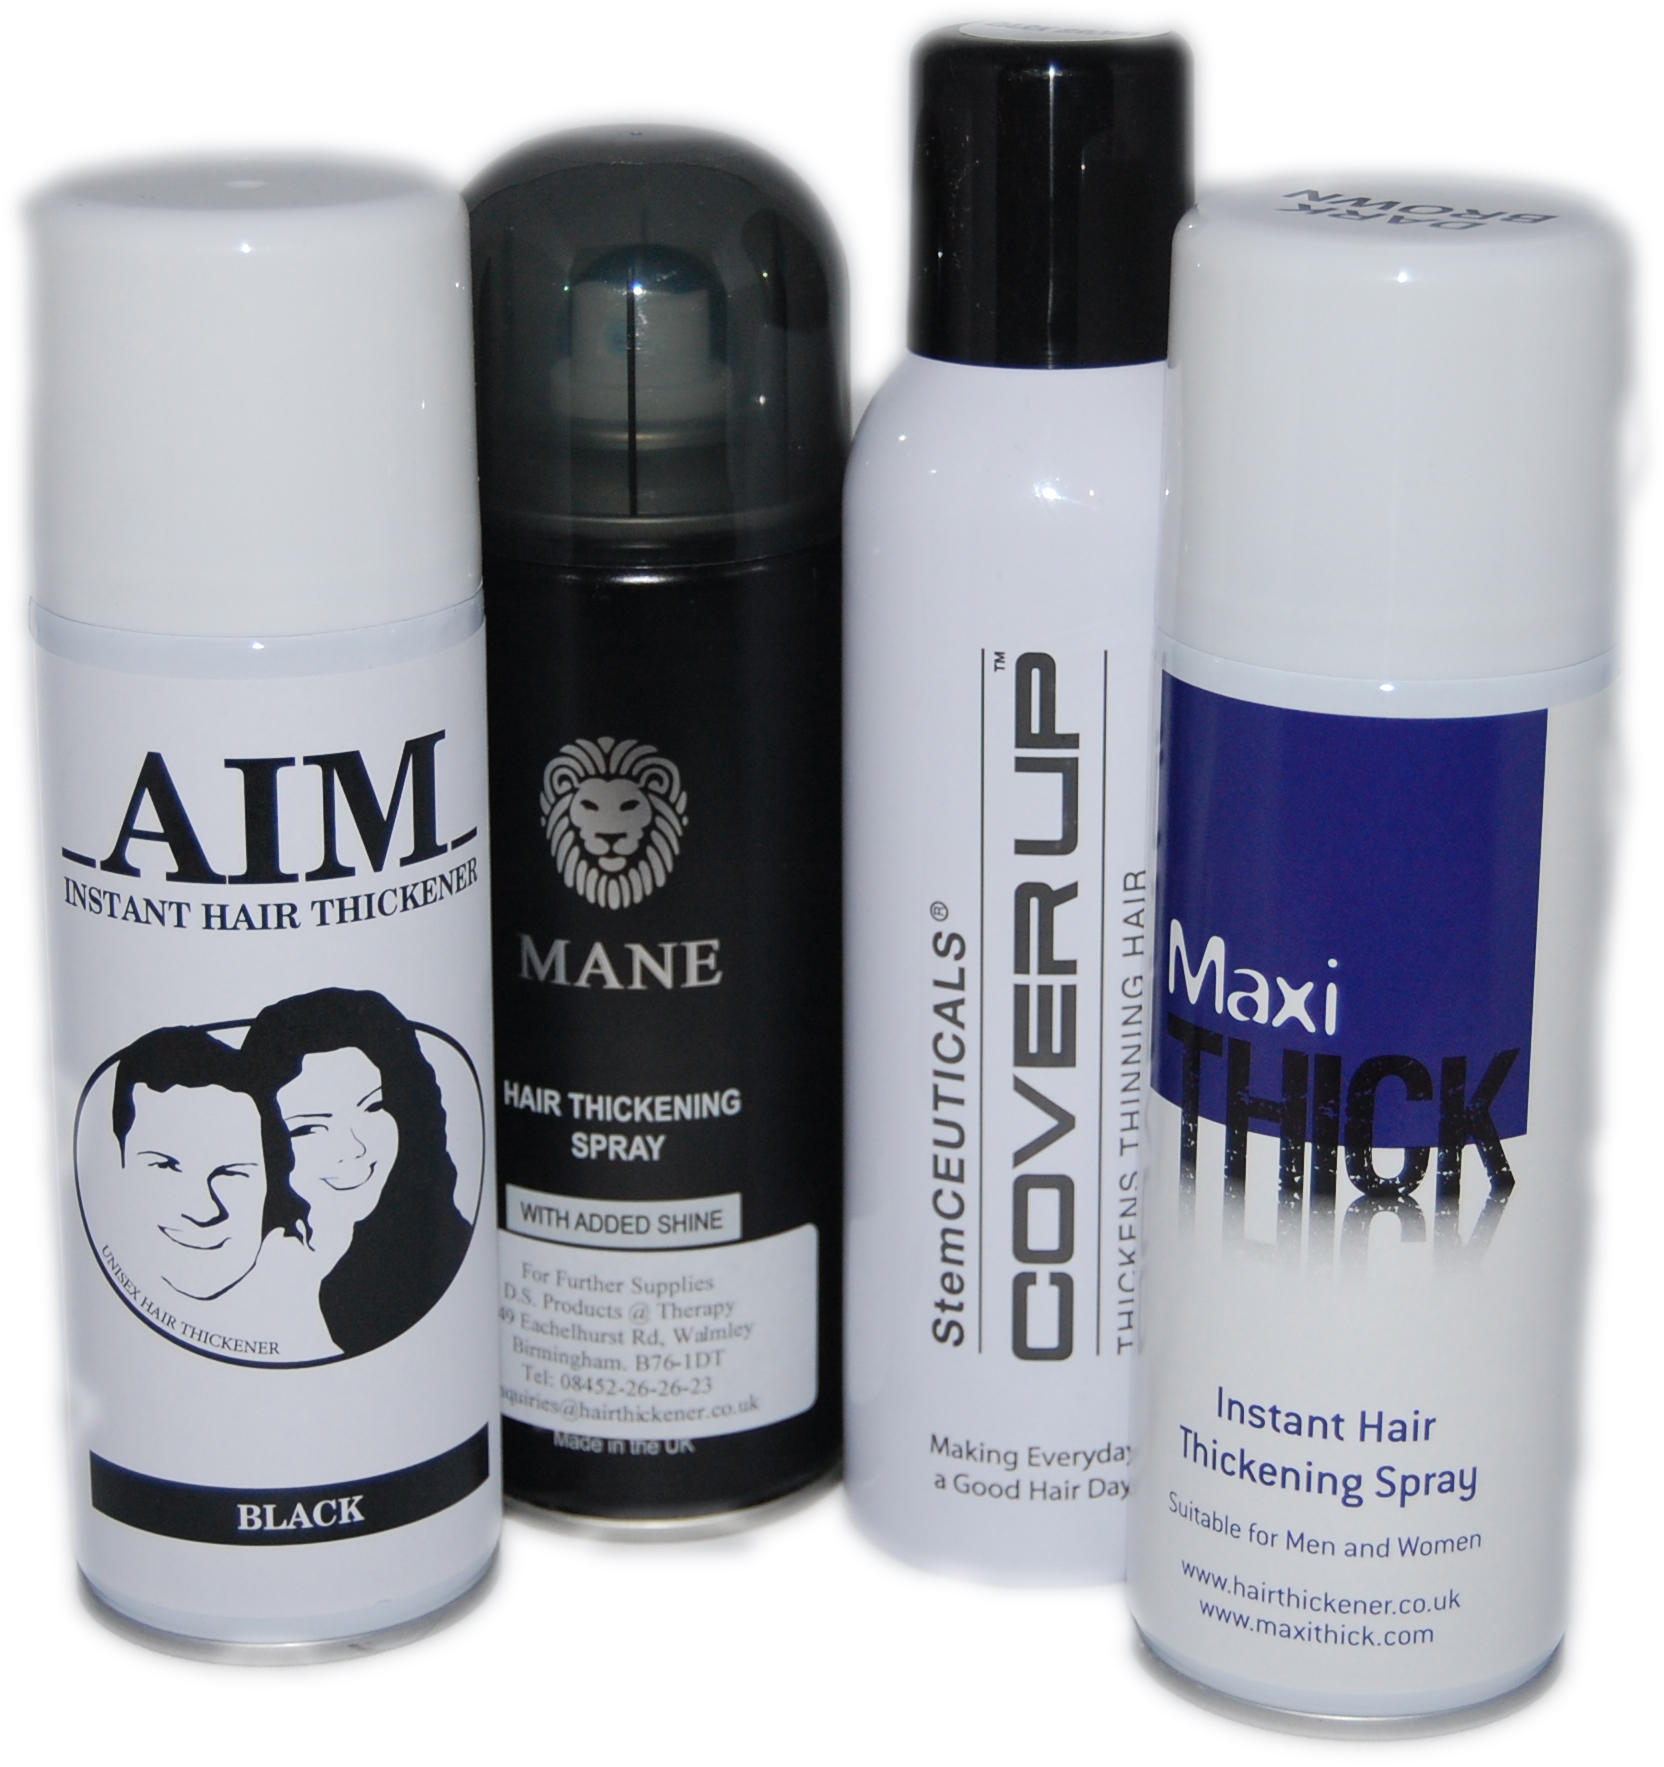 Instant Hair Thickening Sprays